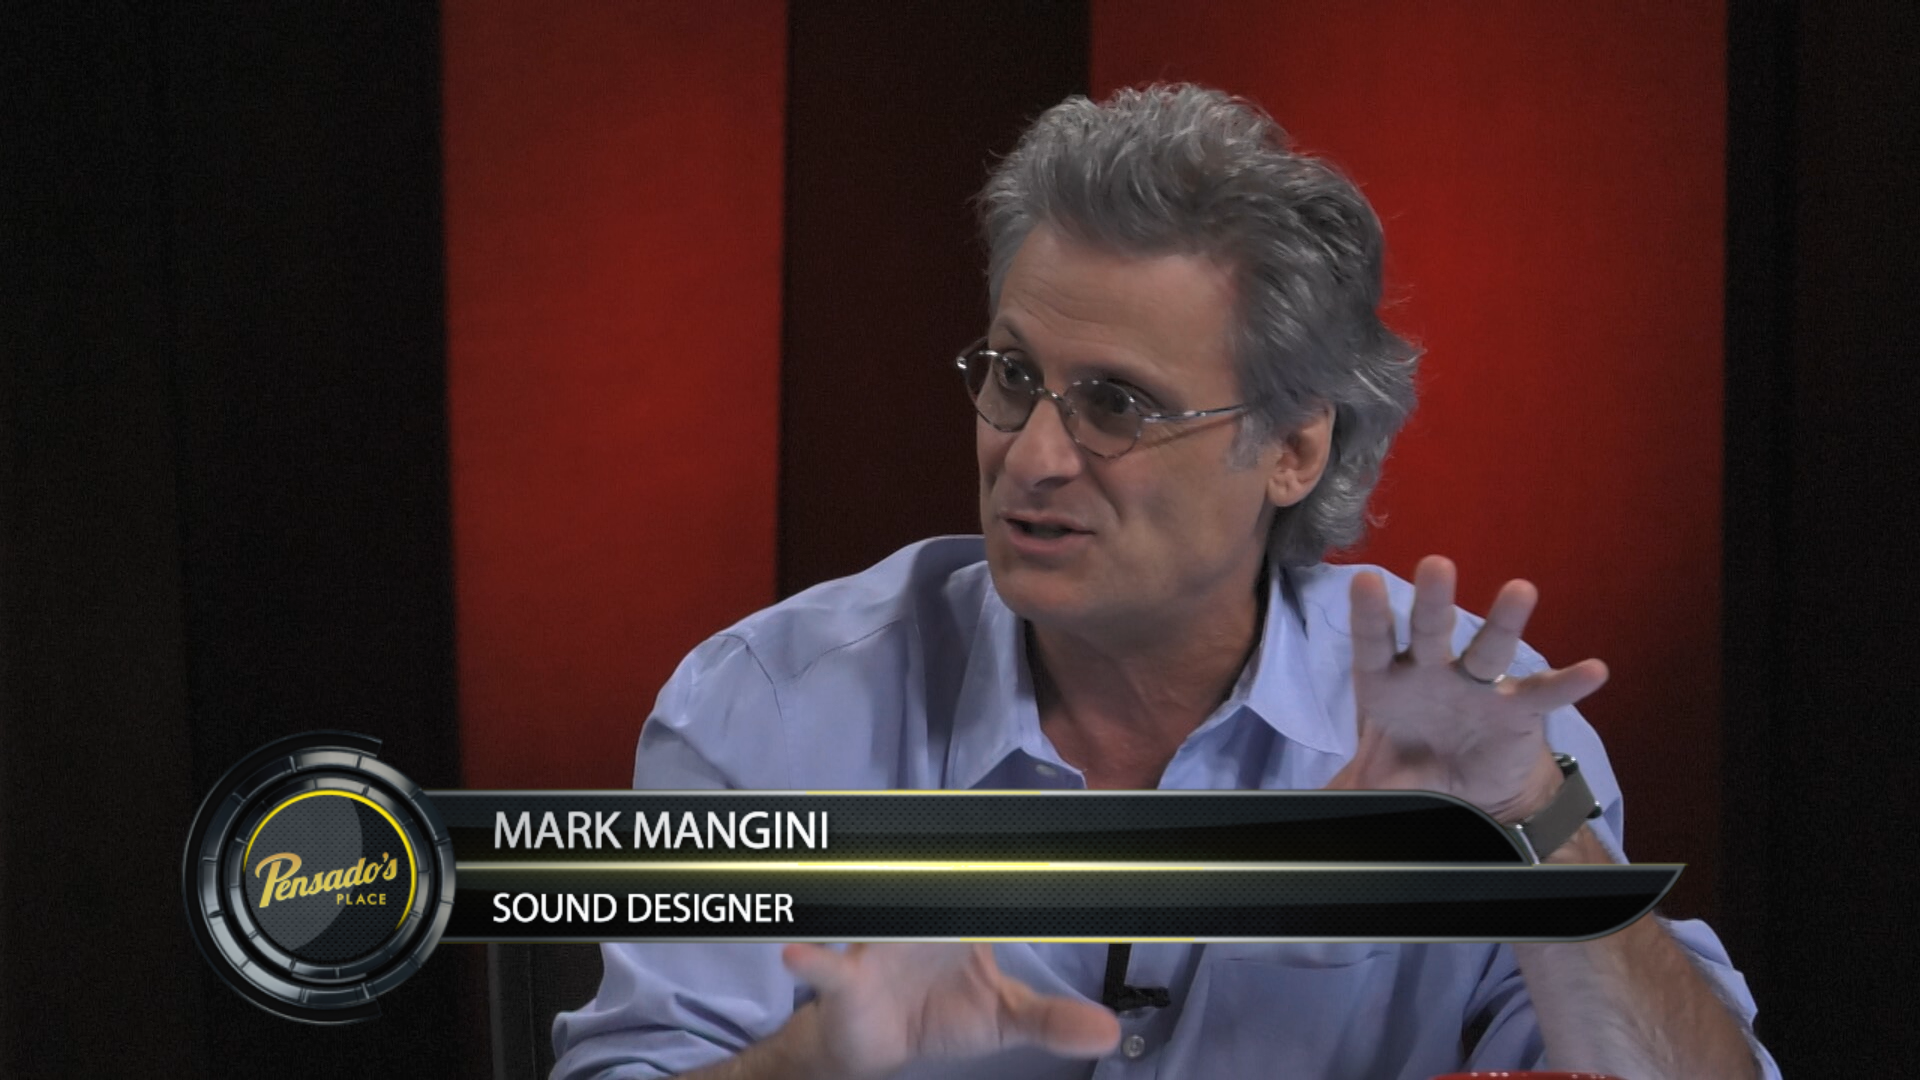 Mark Mangini Still Image